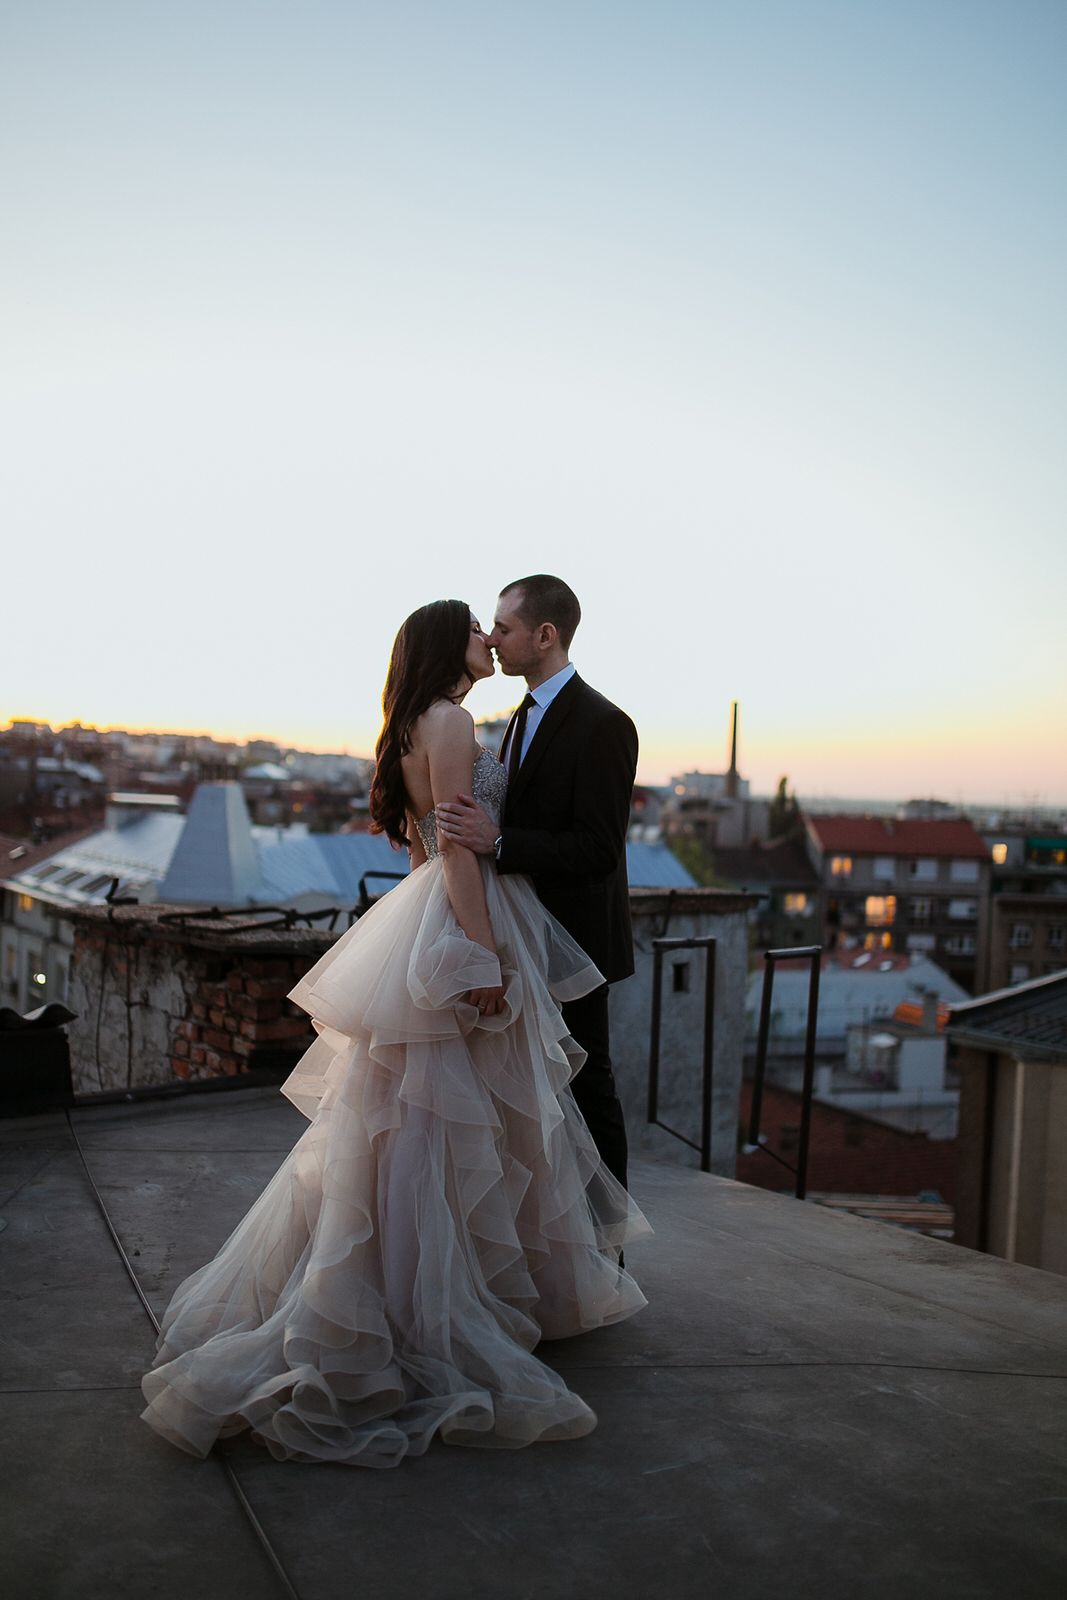 Bride and groom on a rooftop in sunset